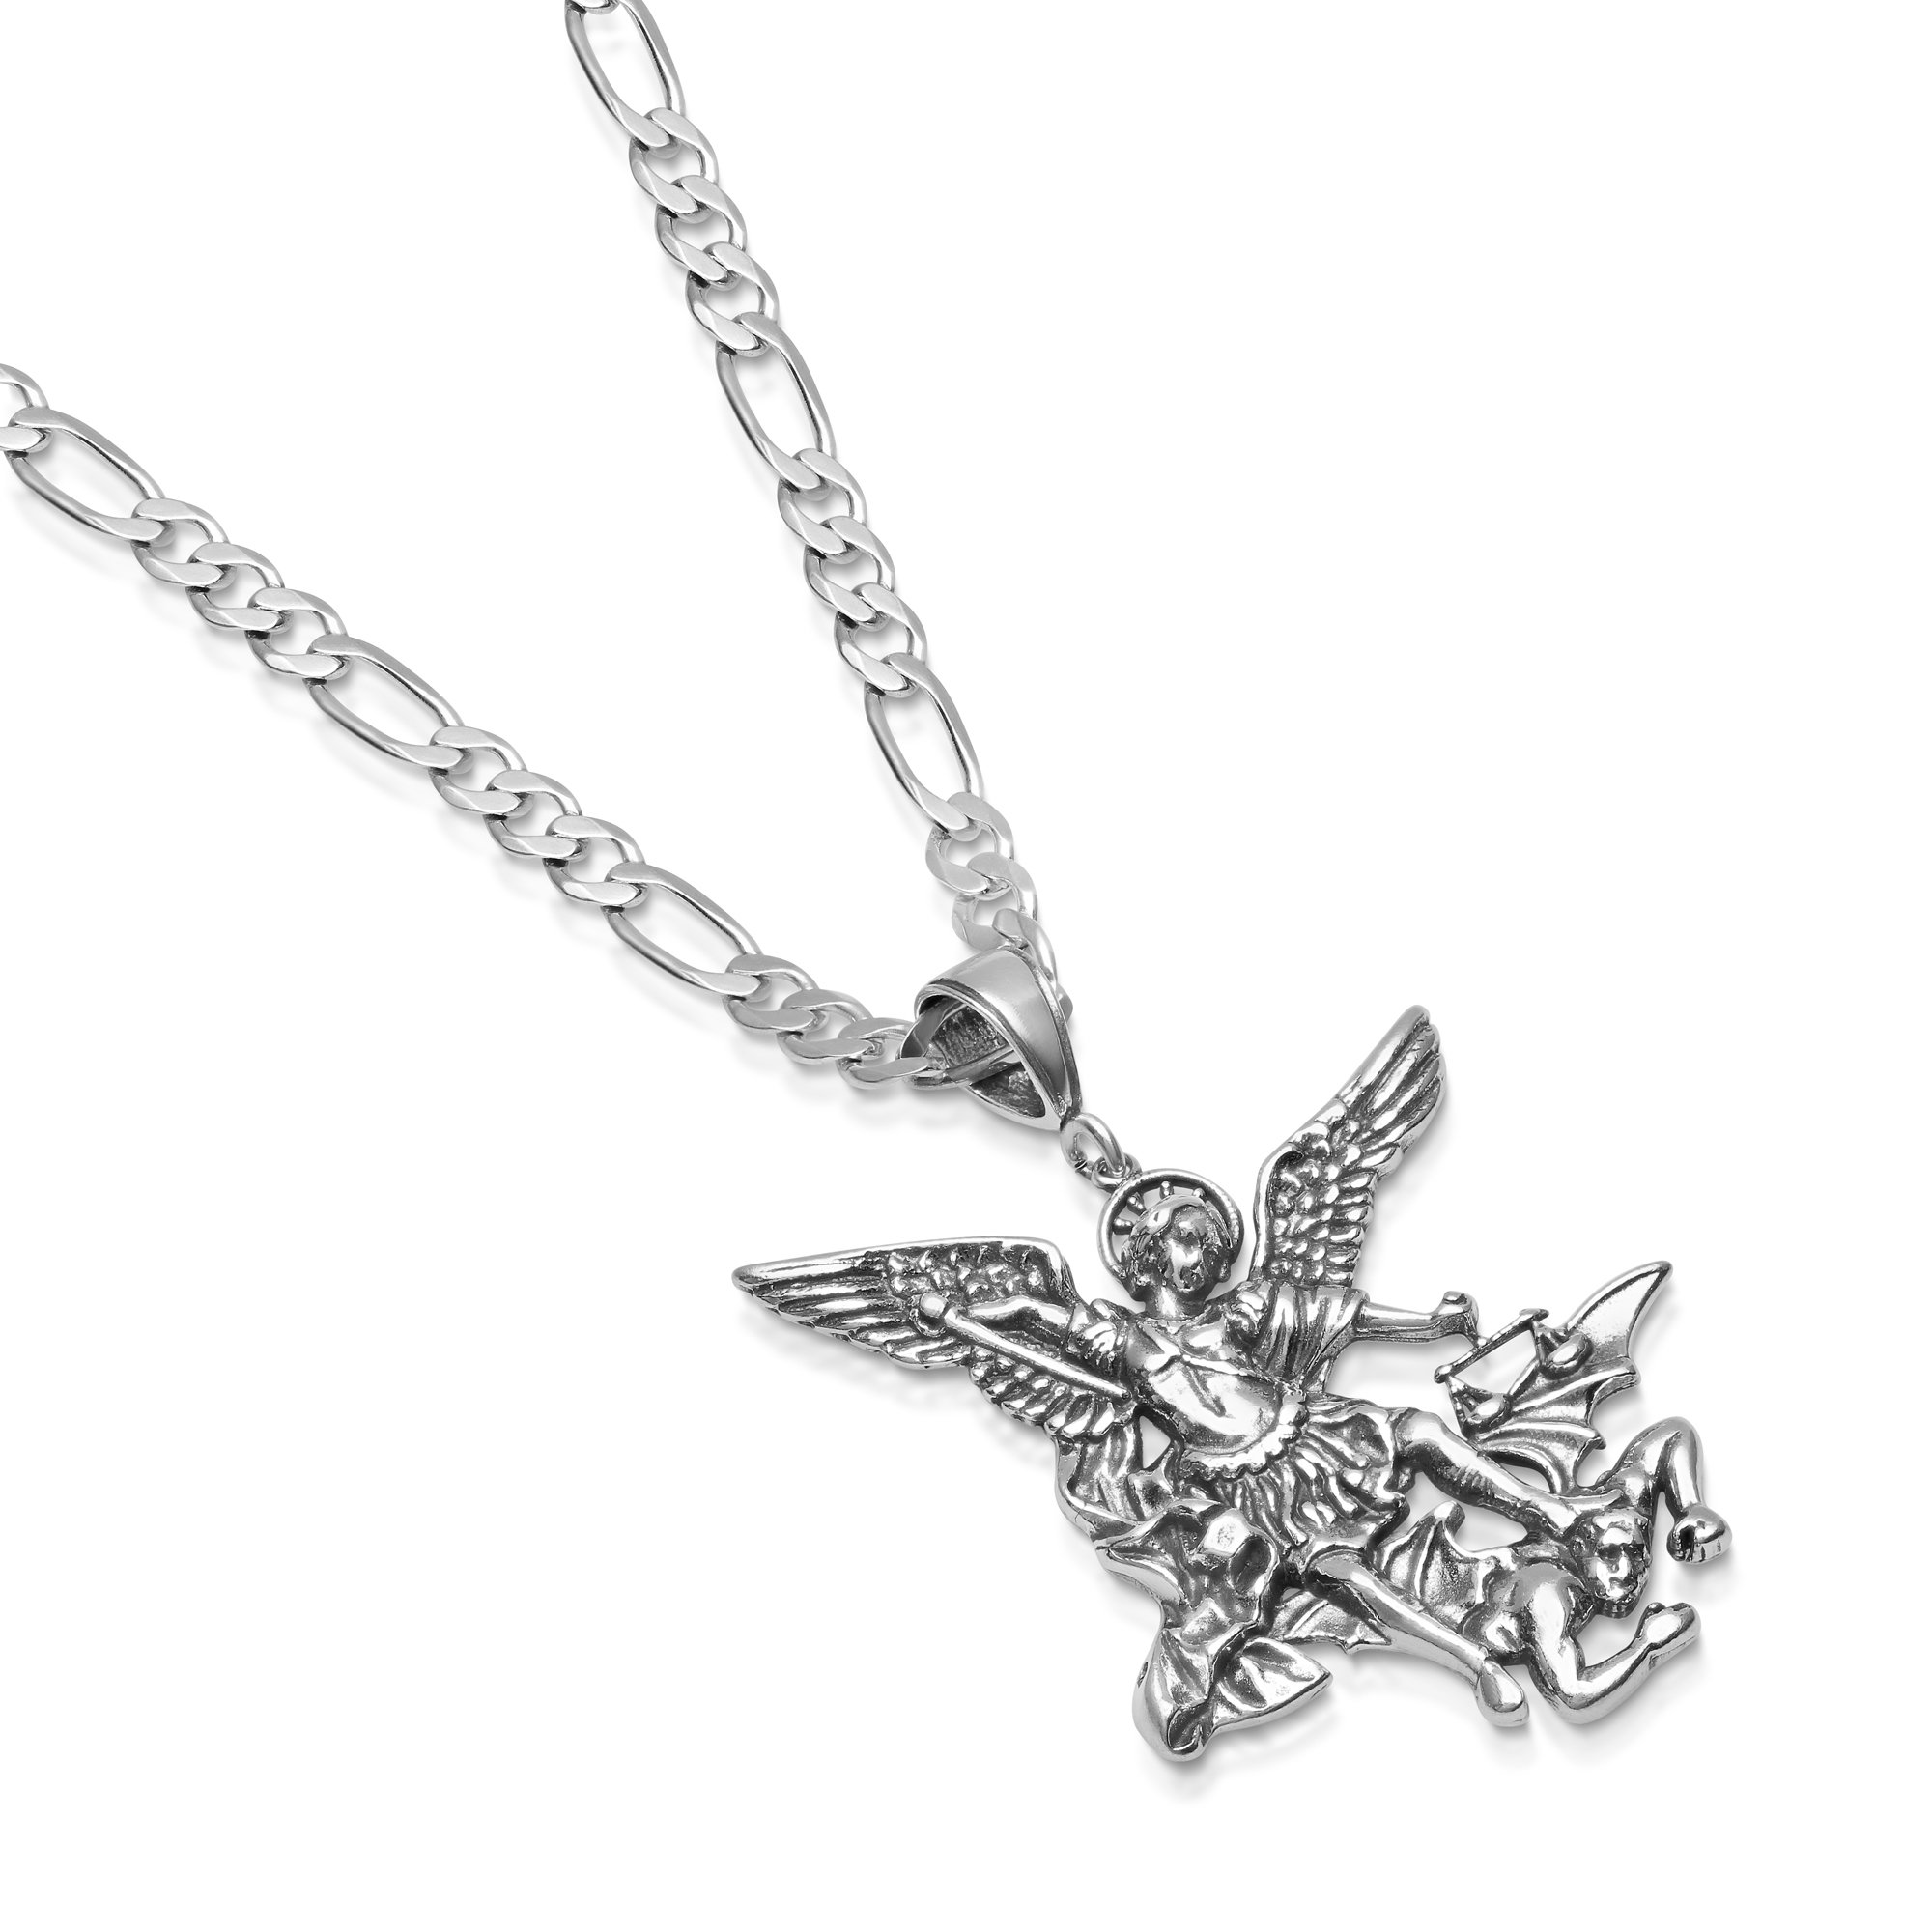 Sterling Silver St. Michael Necklace Pendant Figaro Chain - Large - 5mm - 30 Inch